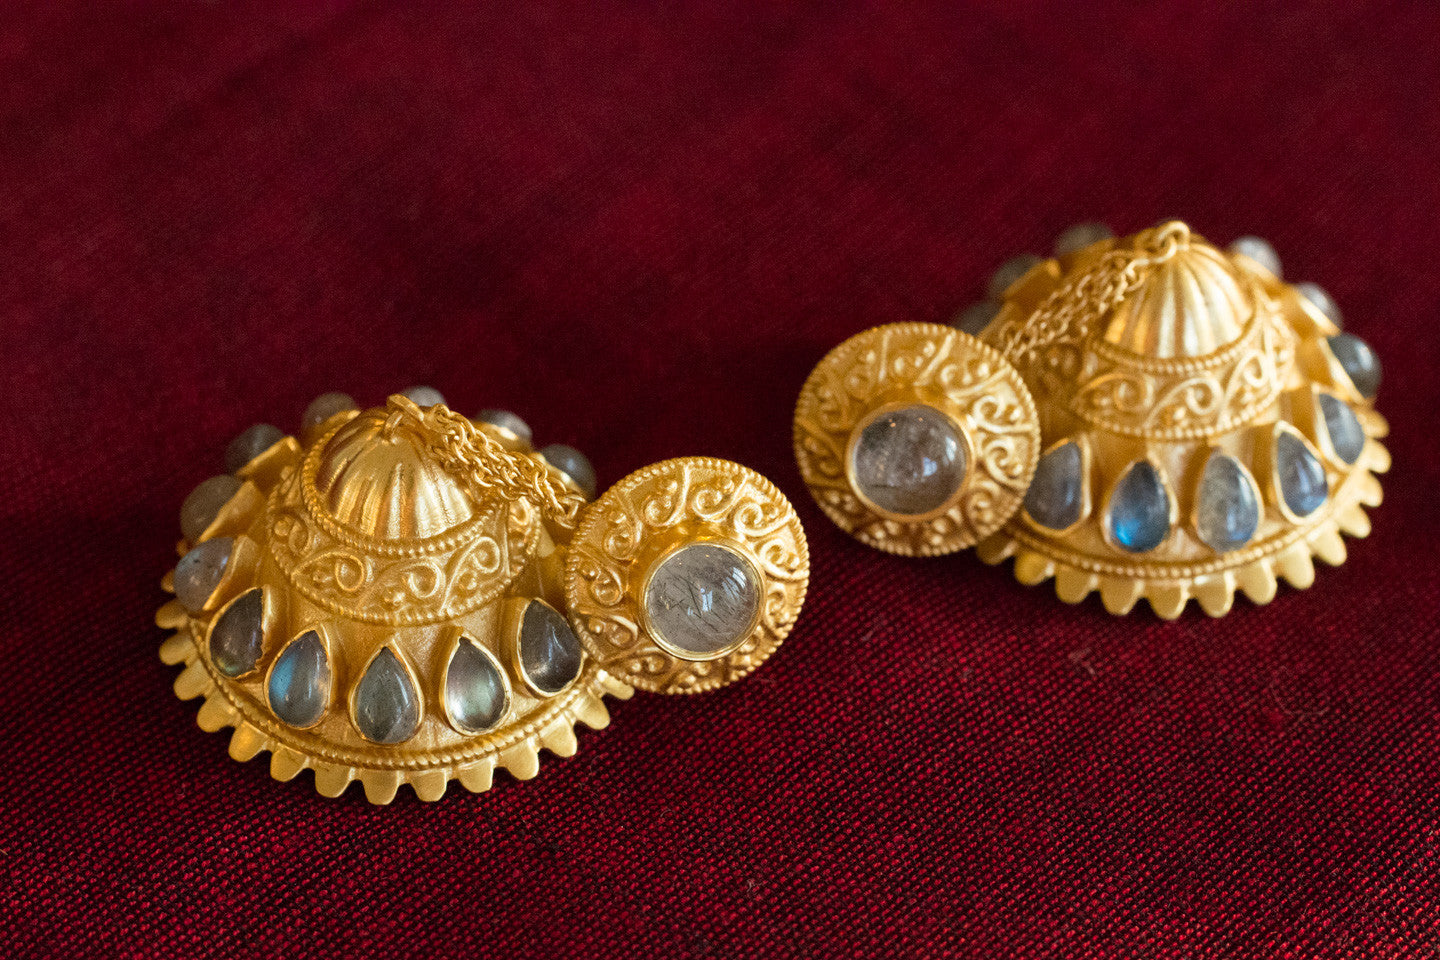 20a446-Silver-Gold-Plated-Amrapali-Earring-Moonstone